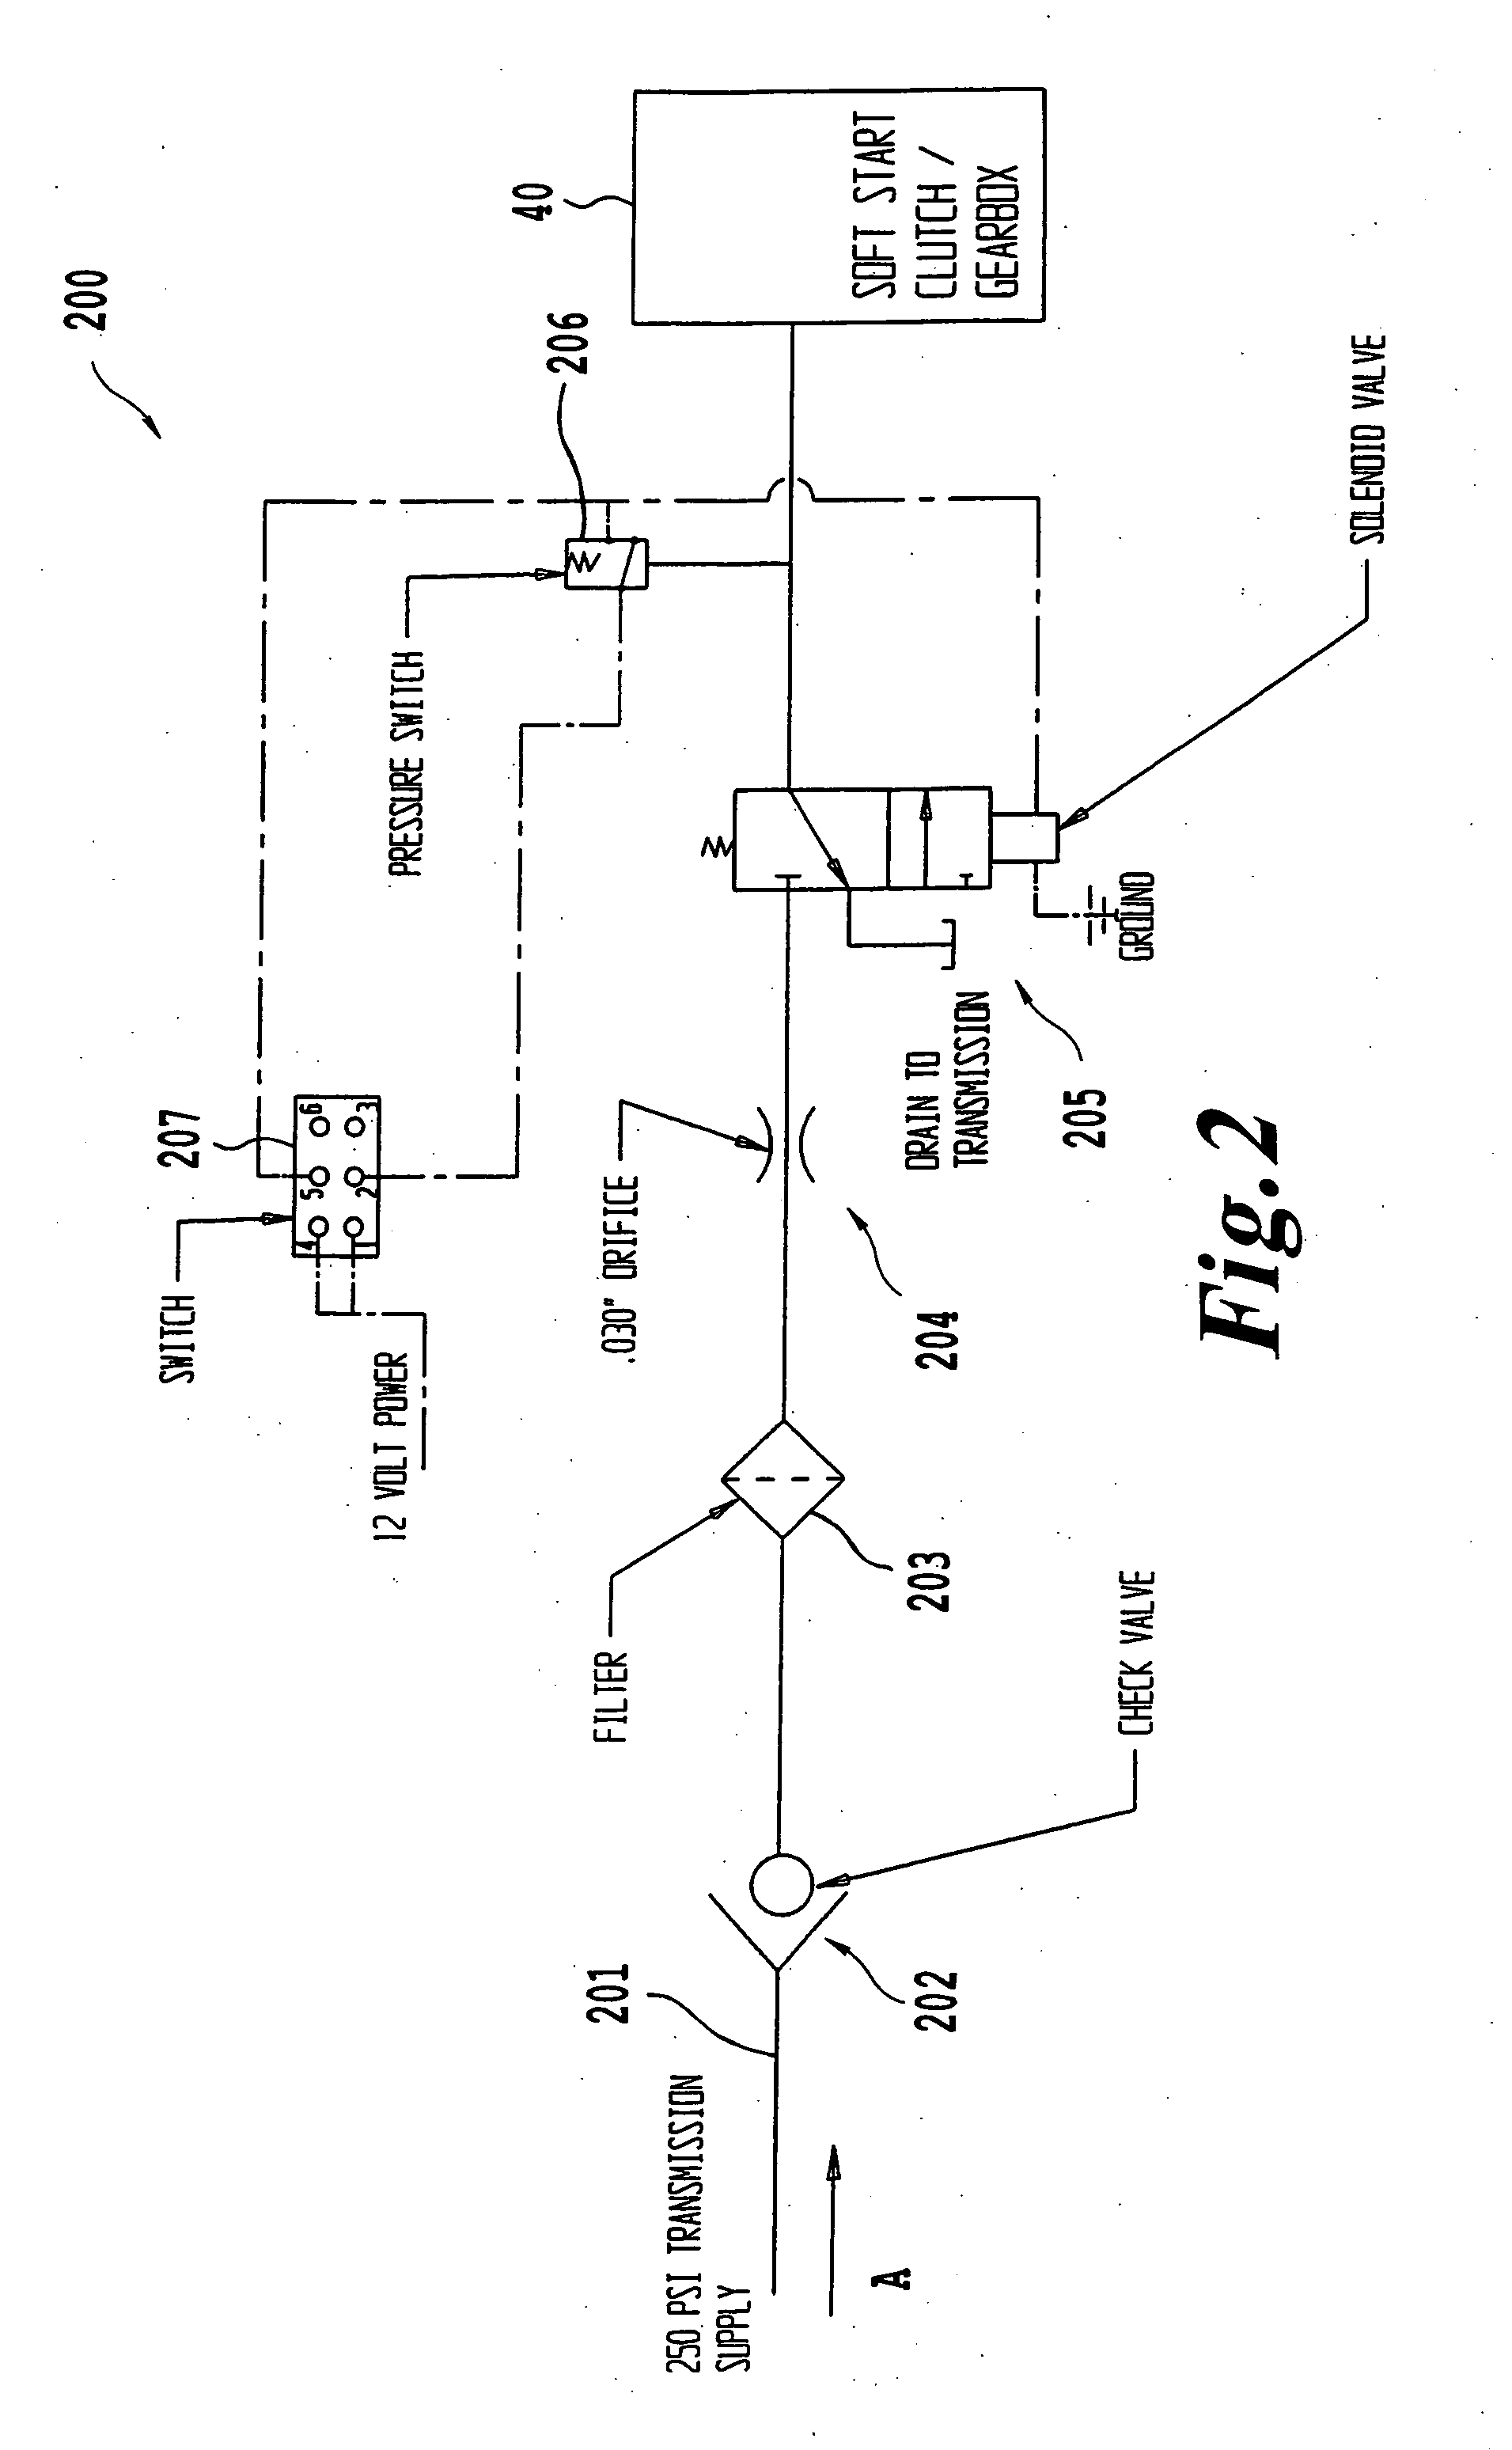 US20060214035A1 20060928 D00003 patent us20060214035 system and method of implementing a soft PTO Switch Wiring Diagram for Massey Furgeson at alyssarenee.co